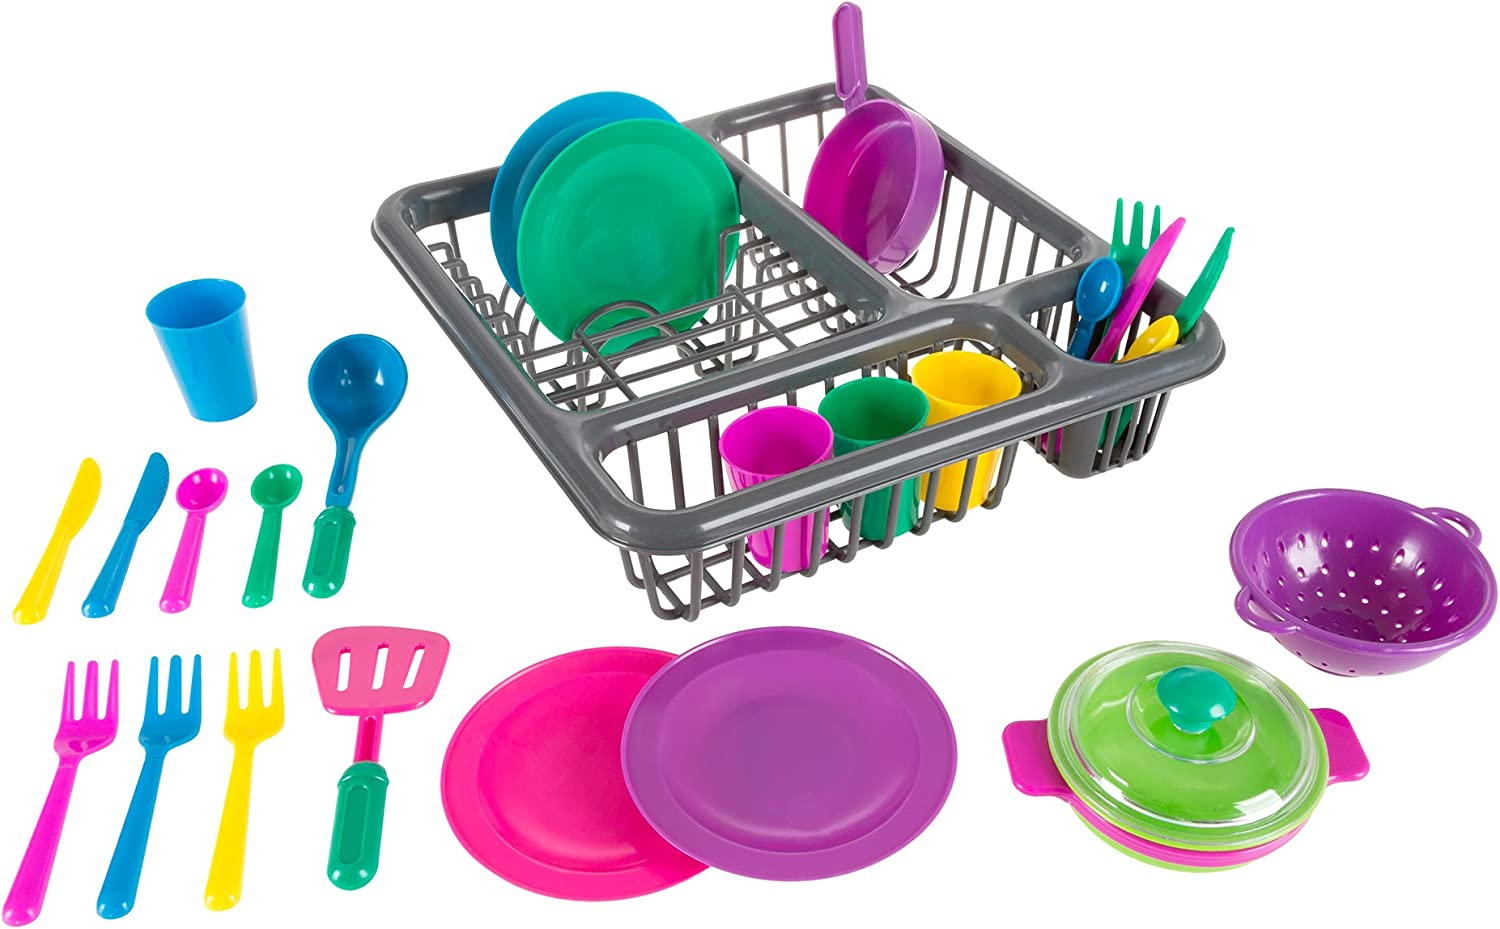 Hey! Play! Kids Play Dish Set, 27 Piece Tableware Dish Set with Dish Drainer - for Kitchen Playset and Pretend Food, Toys